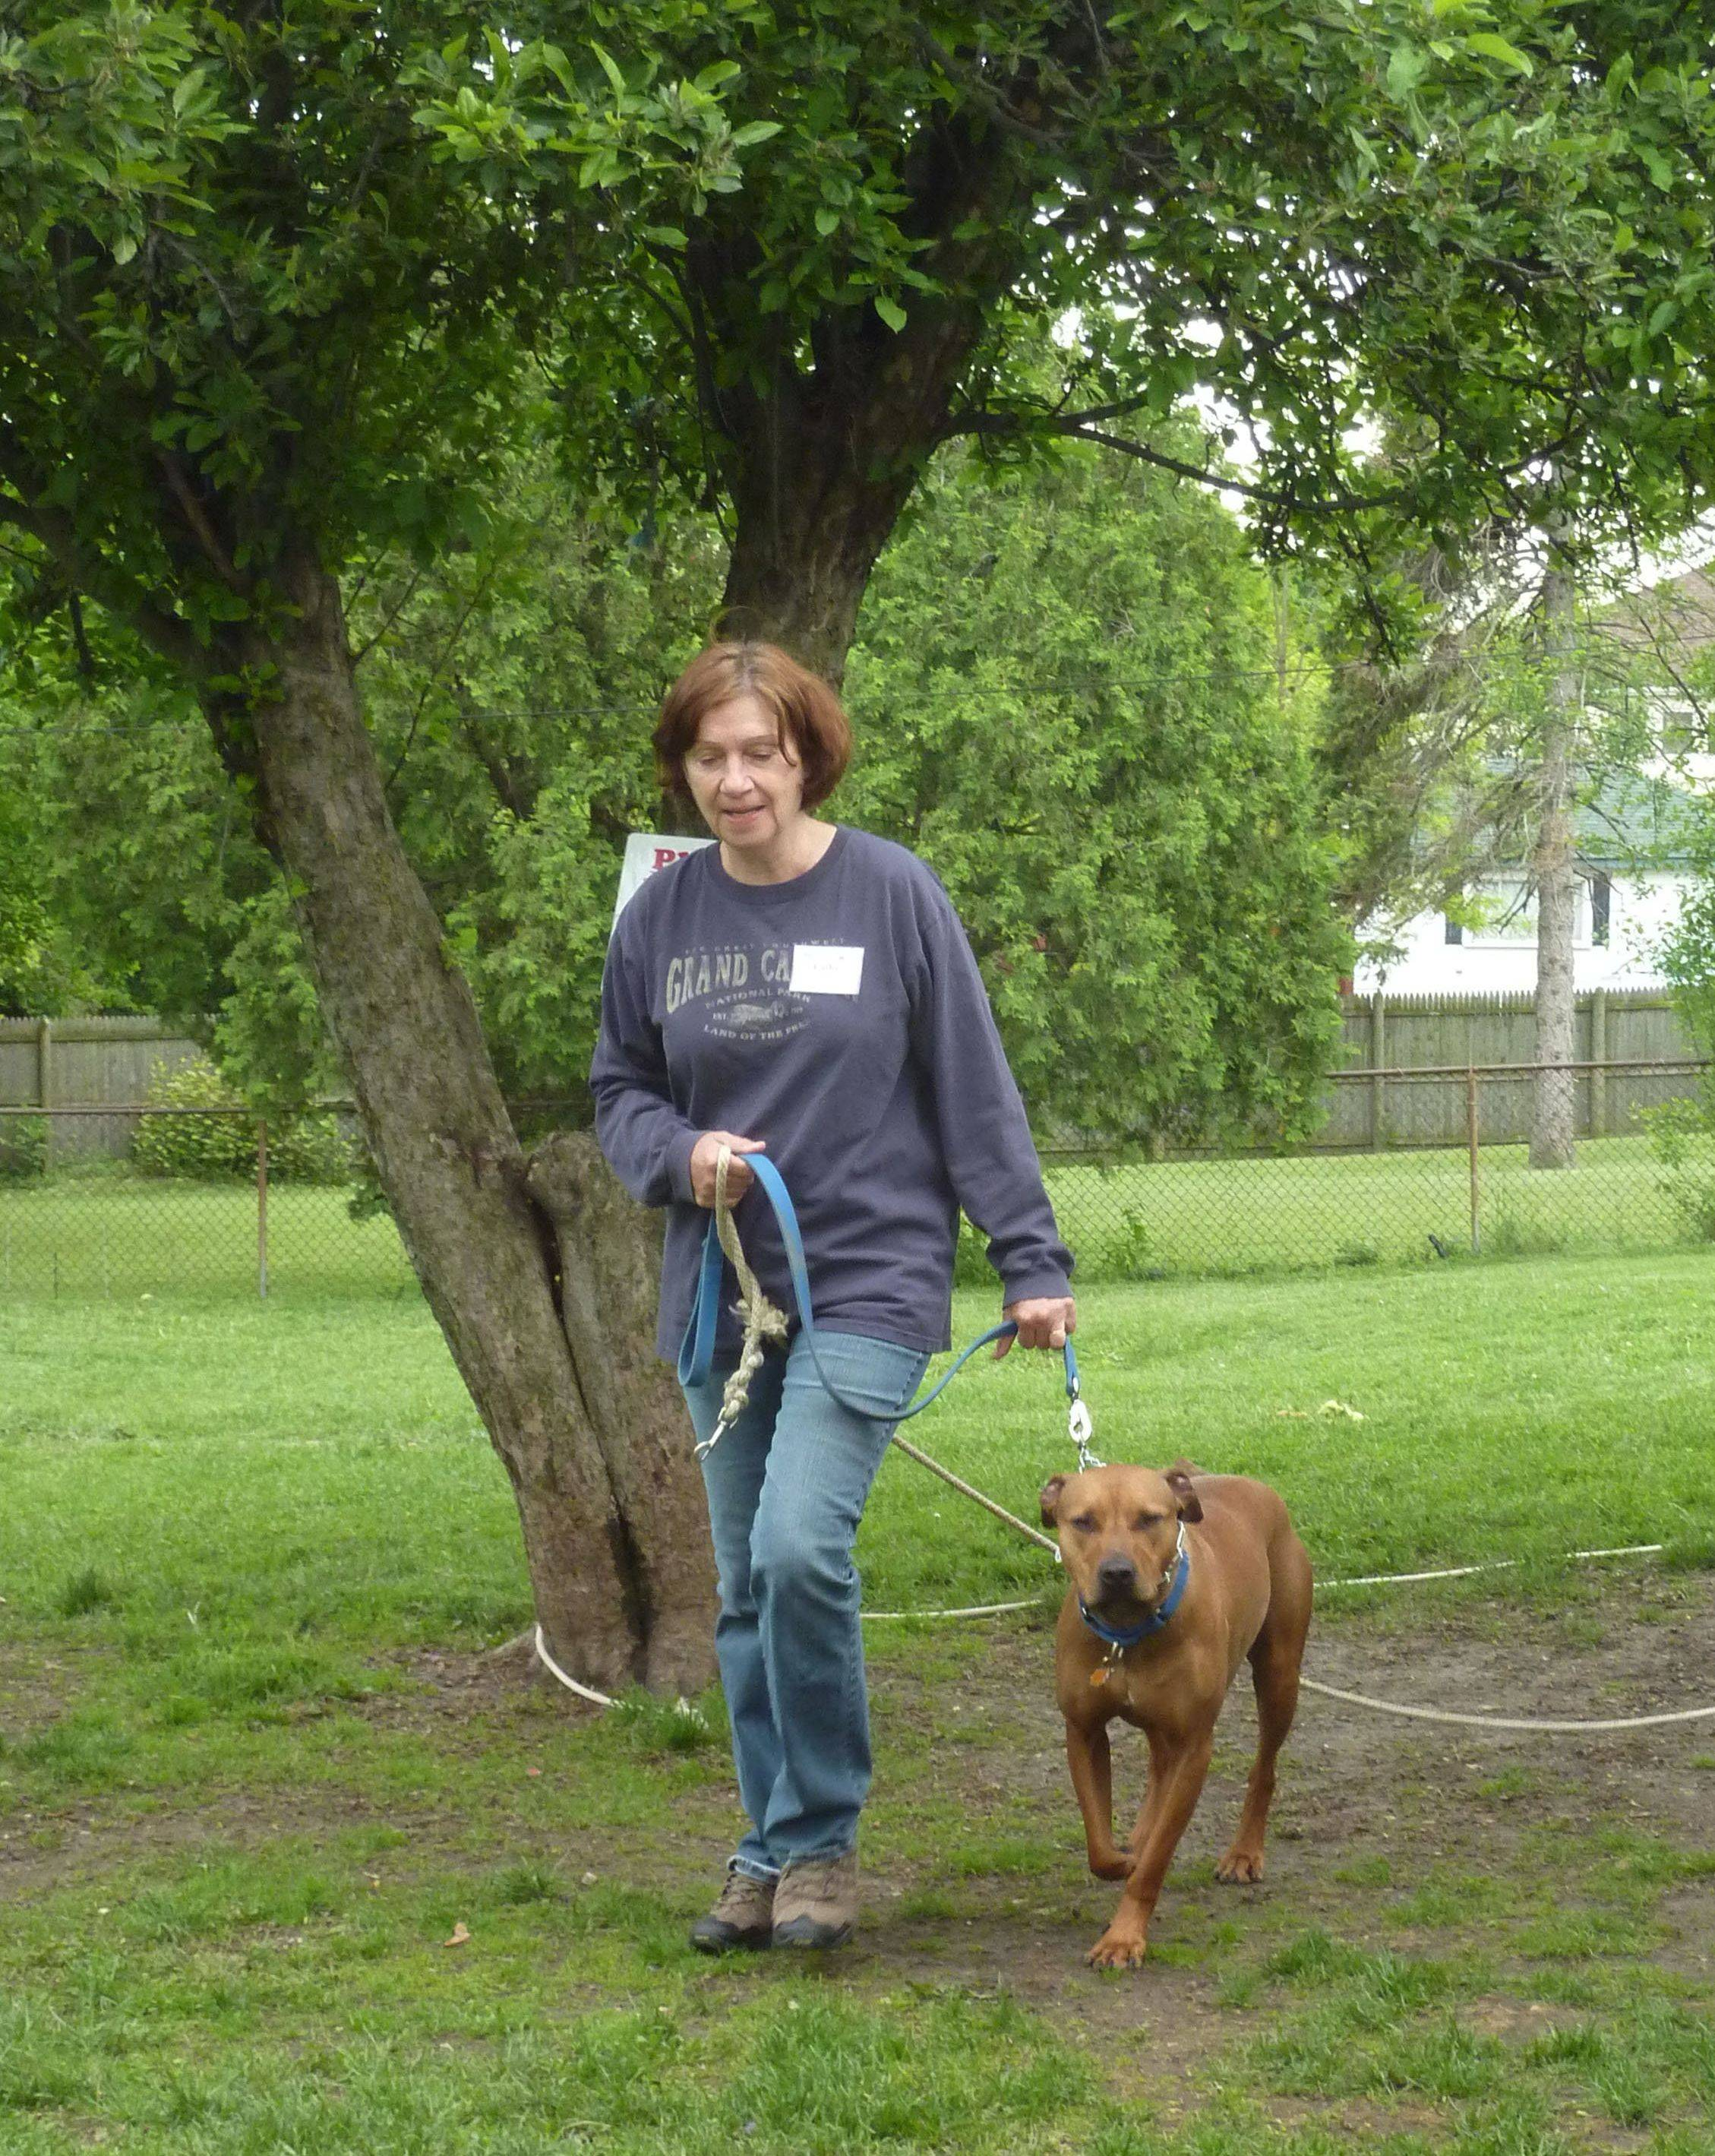 The West Suburban Humane Society in Downers Grove has about 350 volunteers like Cathy Butler, walking Jake, a dog up for adoption.